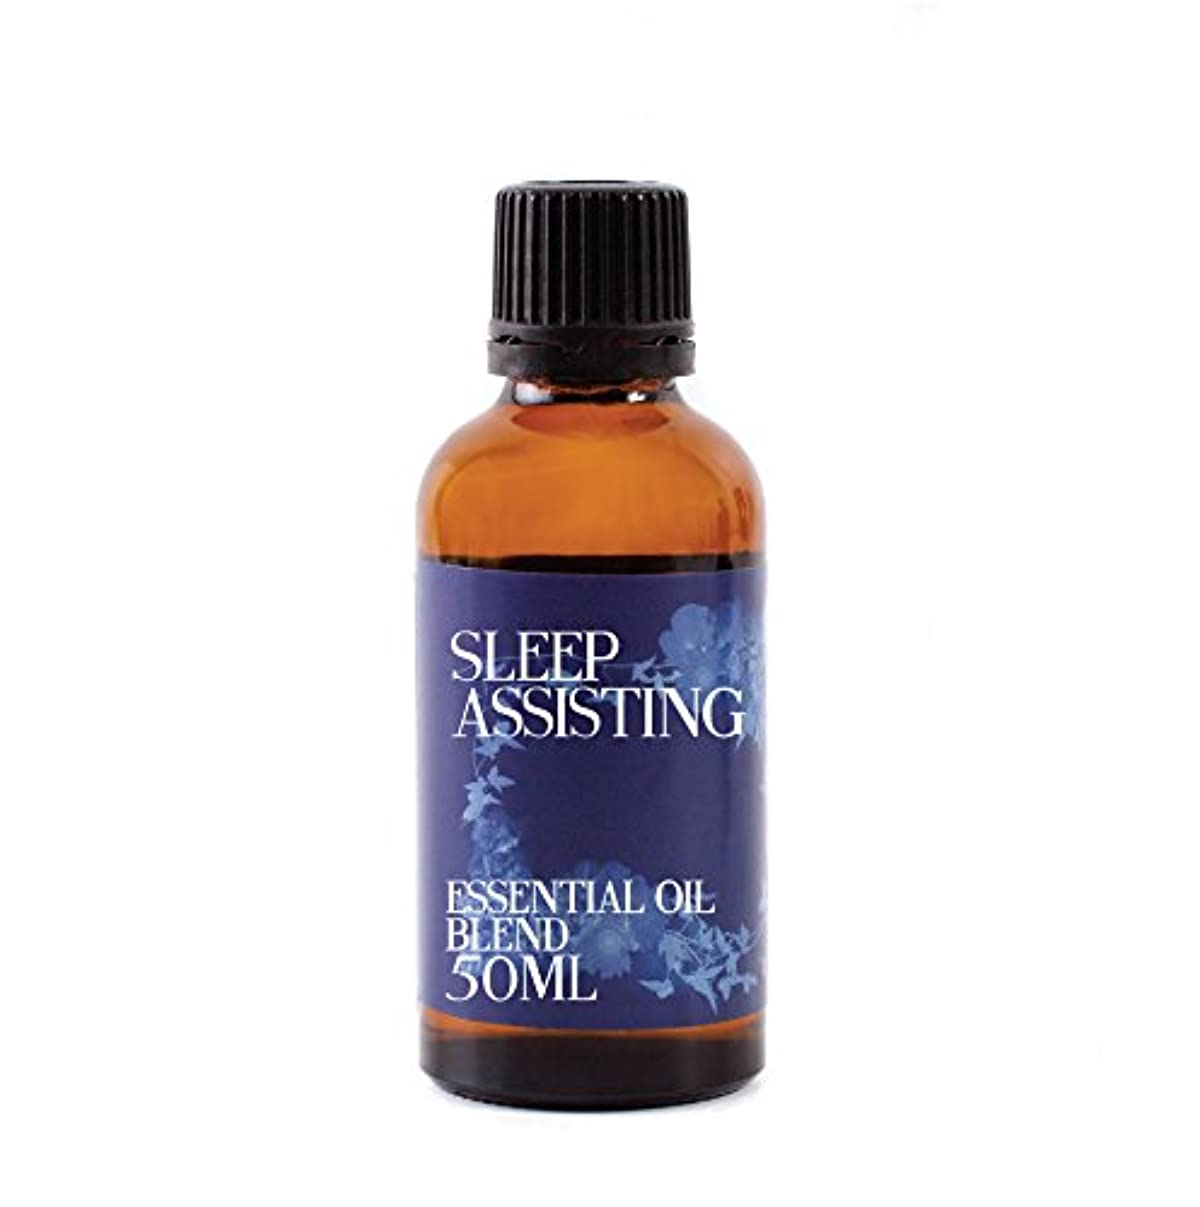 Mystix London | Sleep Assisting Essential Oil Blend - 50ml - 100% Pure